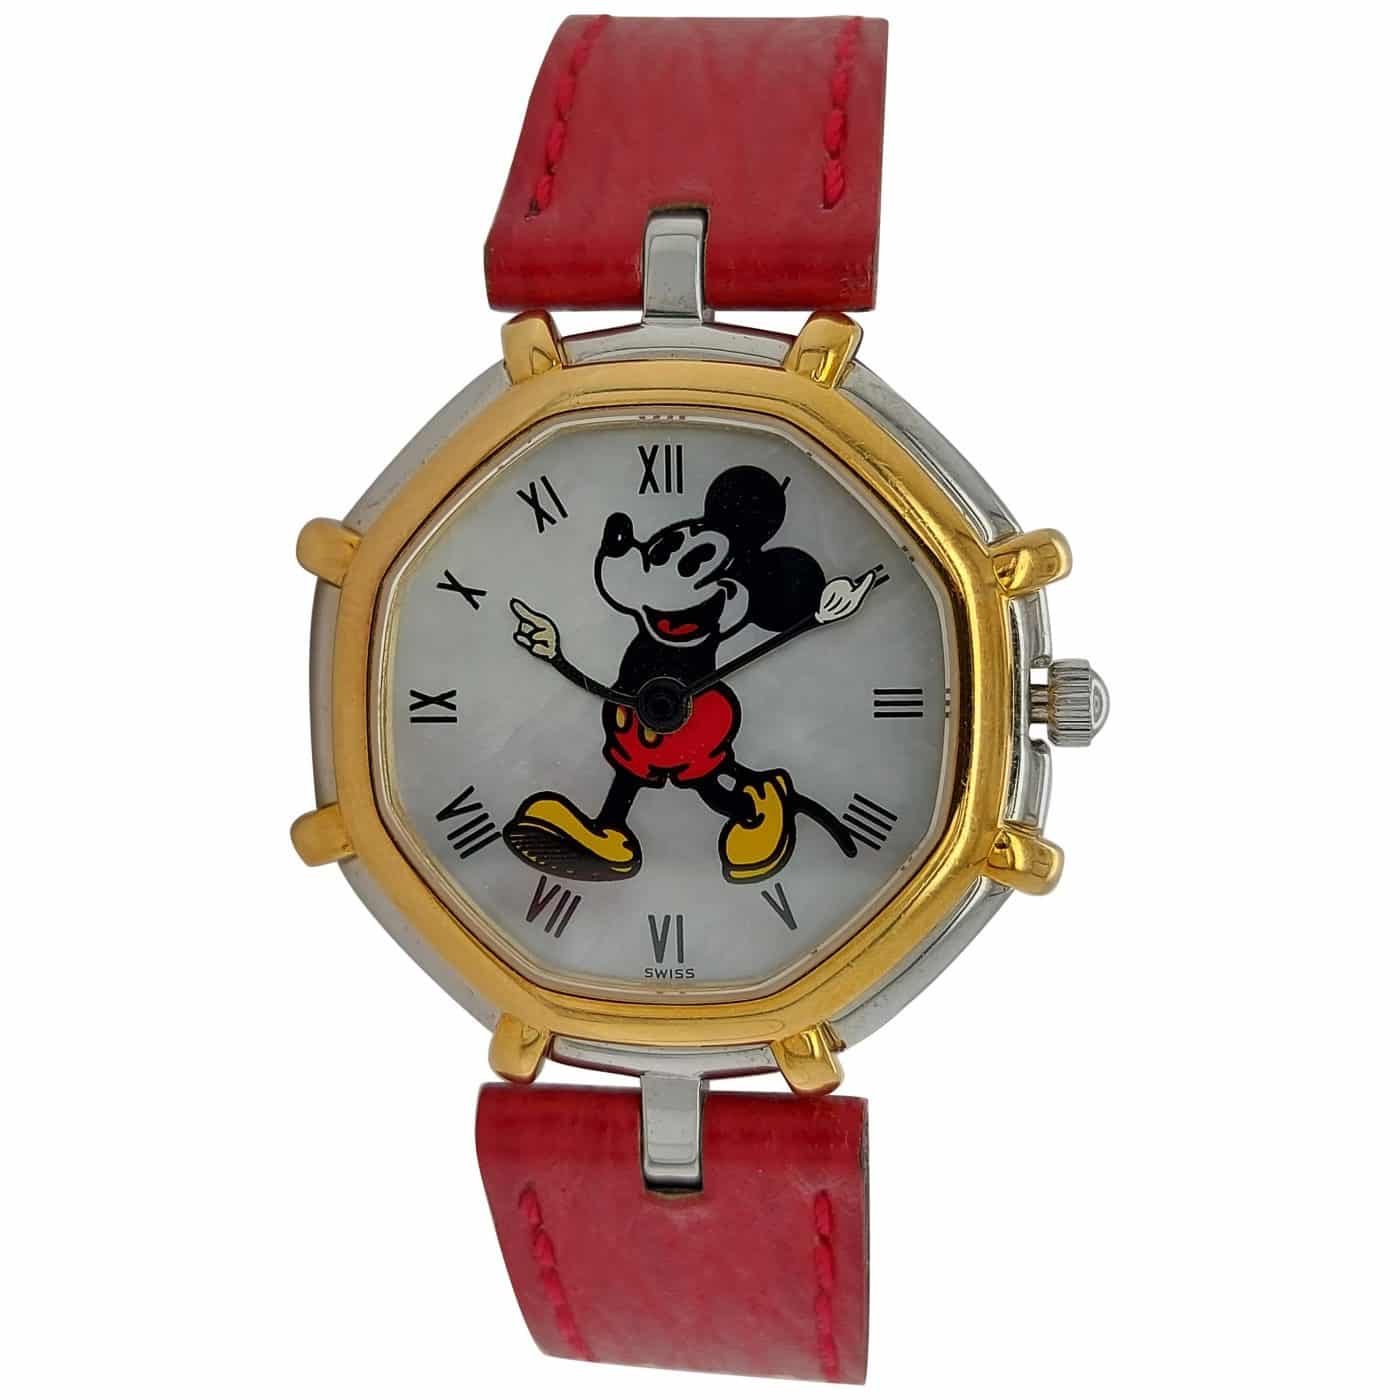 A Mickey Mouse watch designed by Gérald Genta